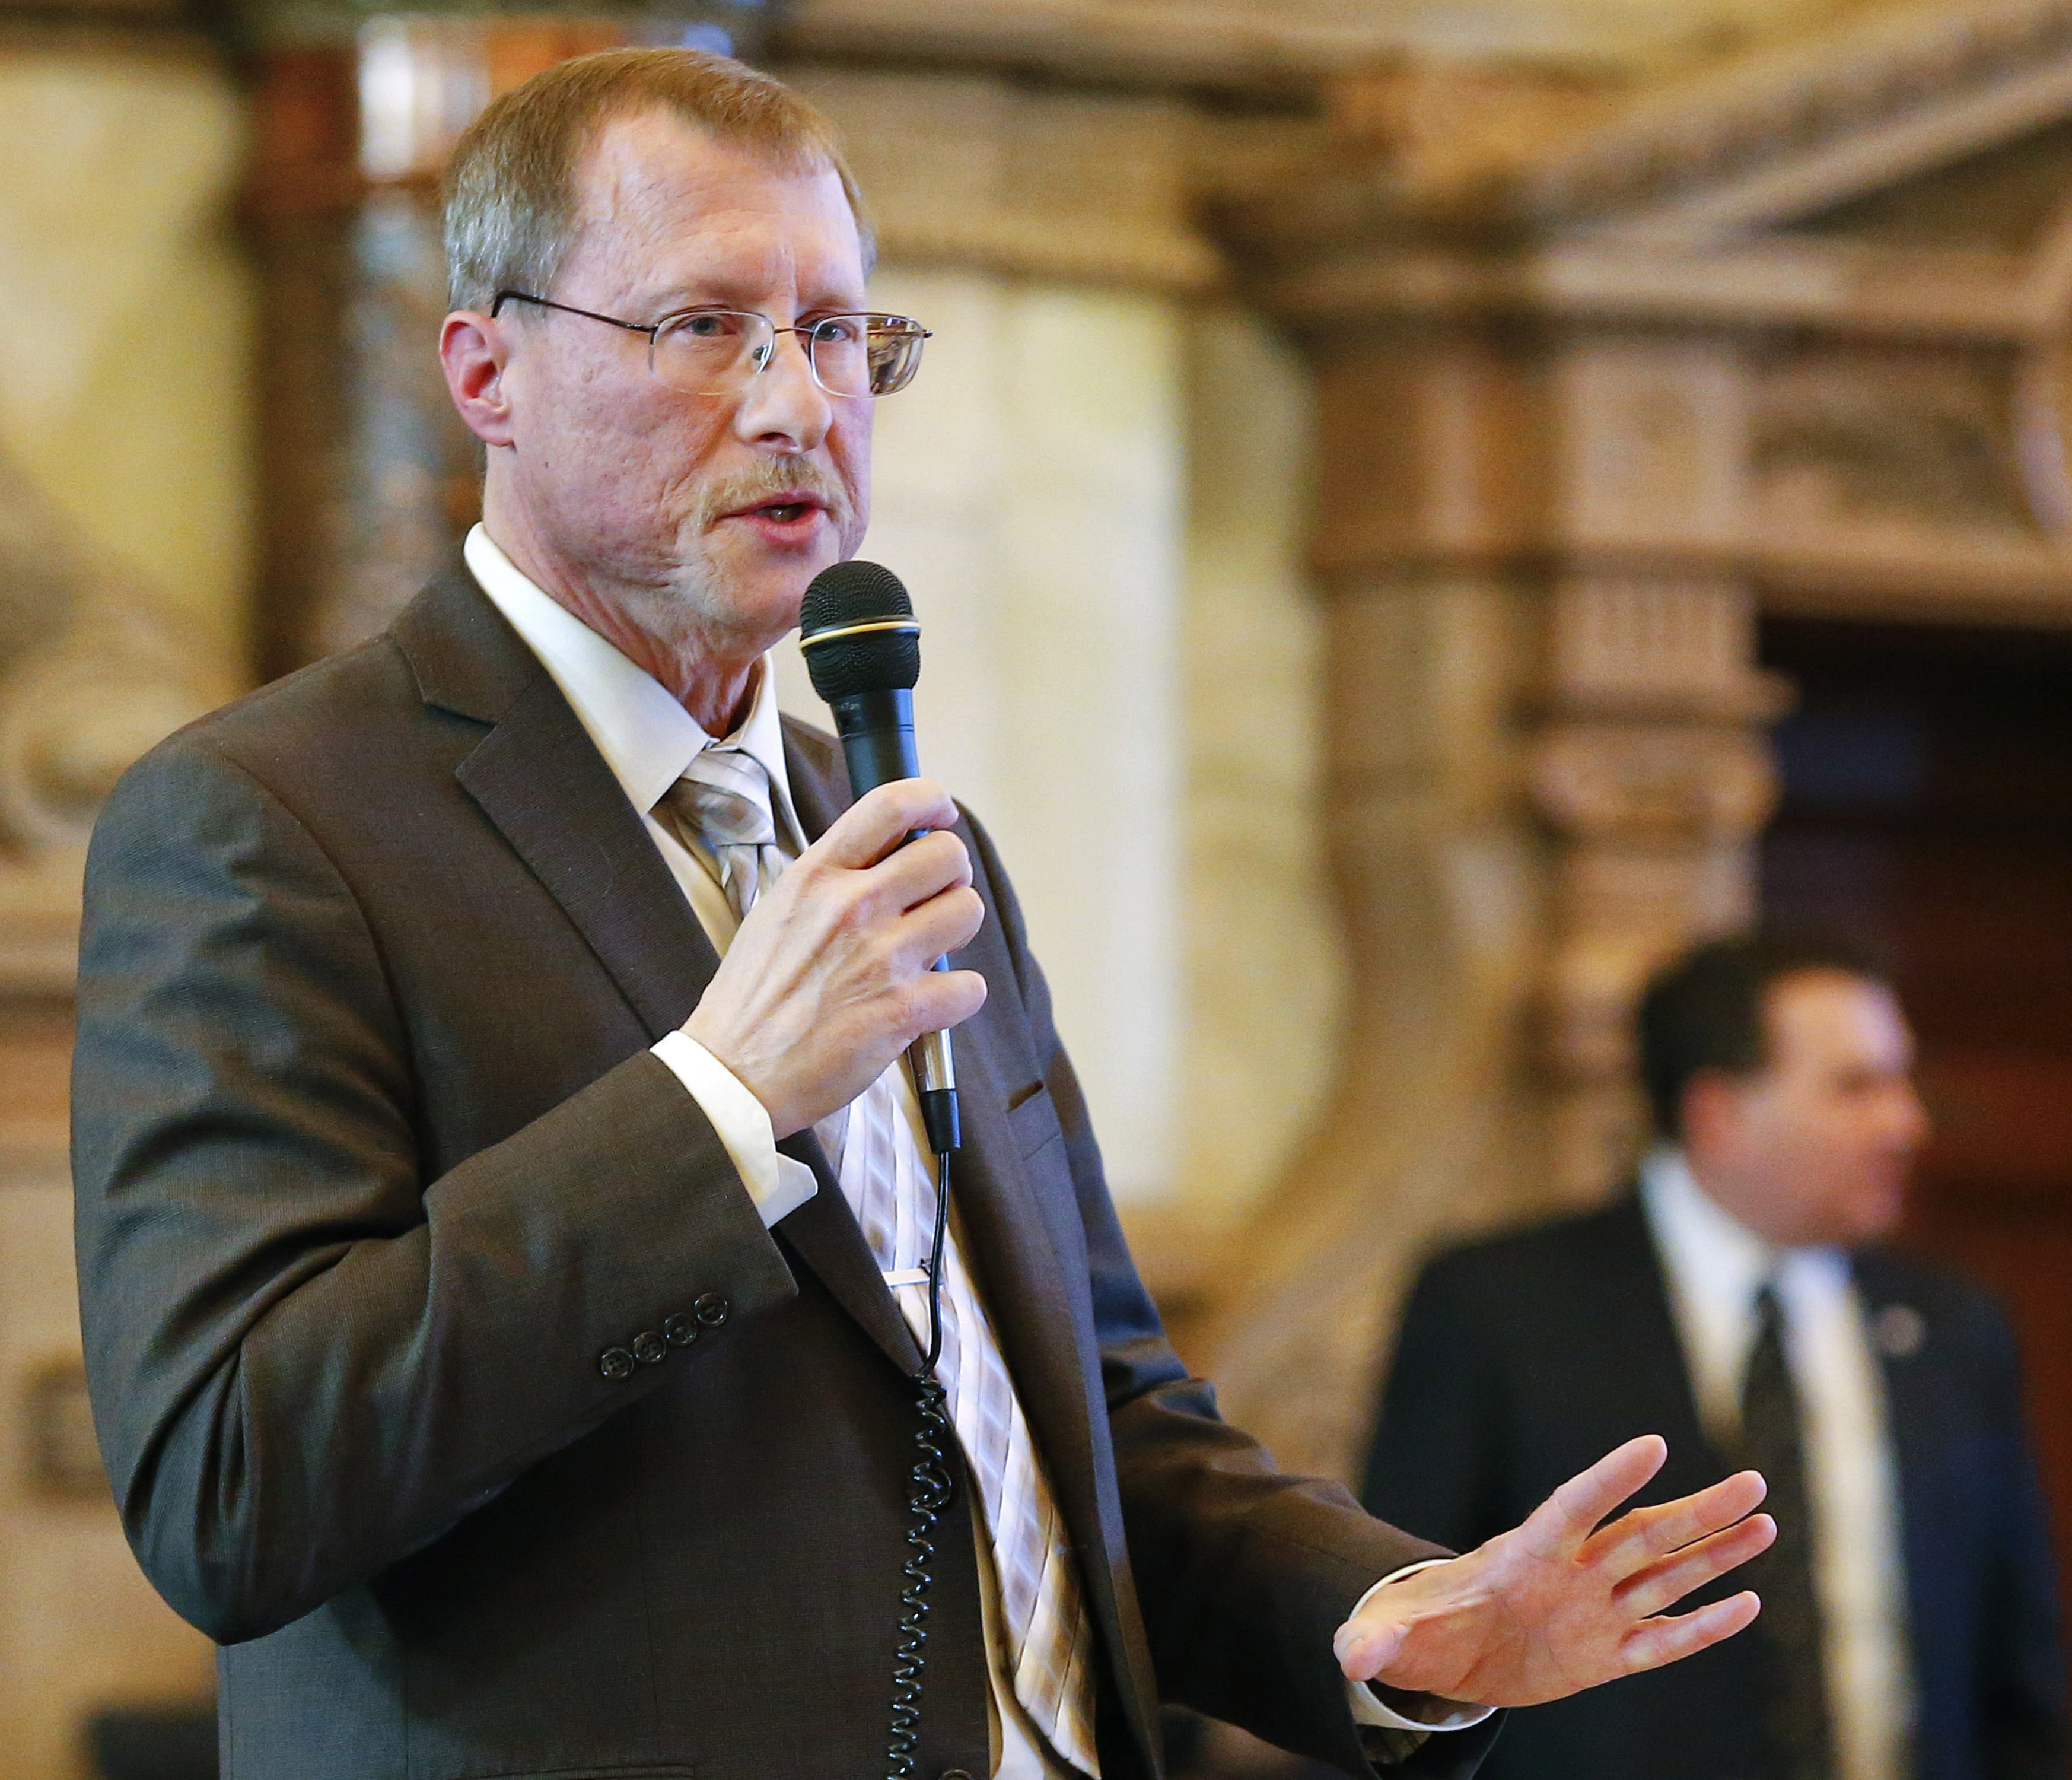 Sen. Mitch Holmes, R-St. John, discusses a bill at the Kansas Statehouse in Topeka on Feb. 26, 2015.